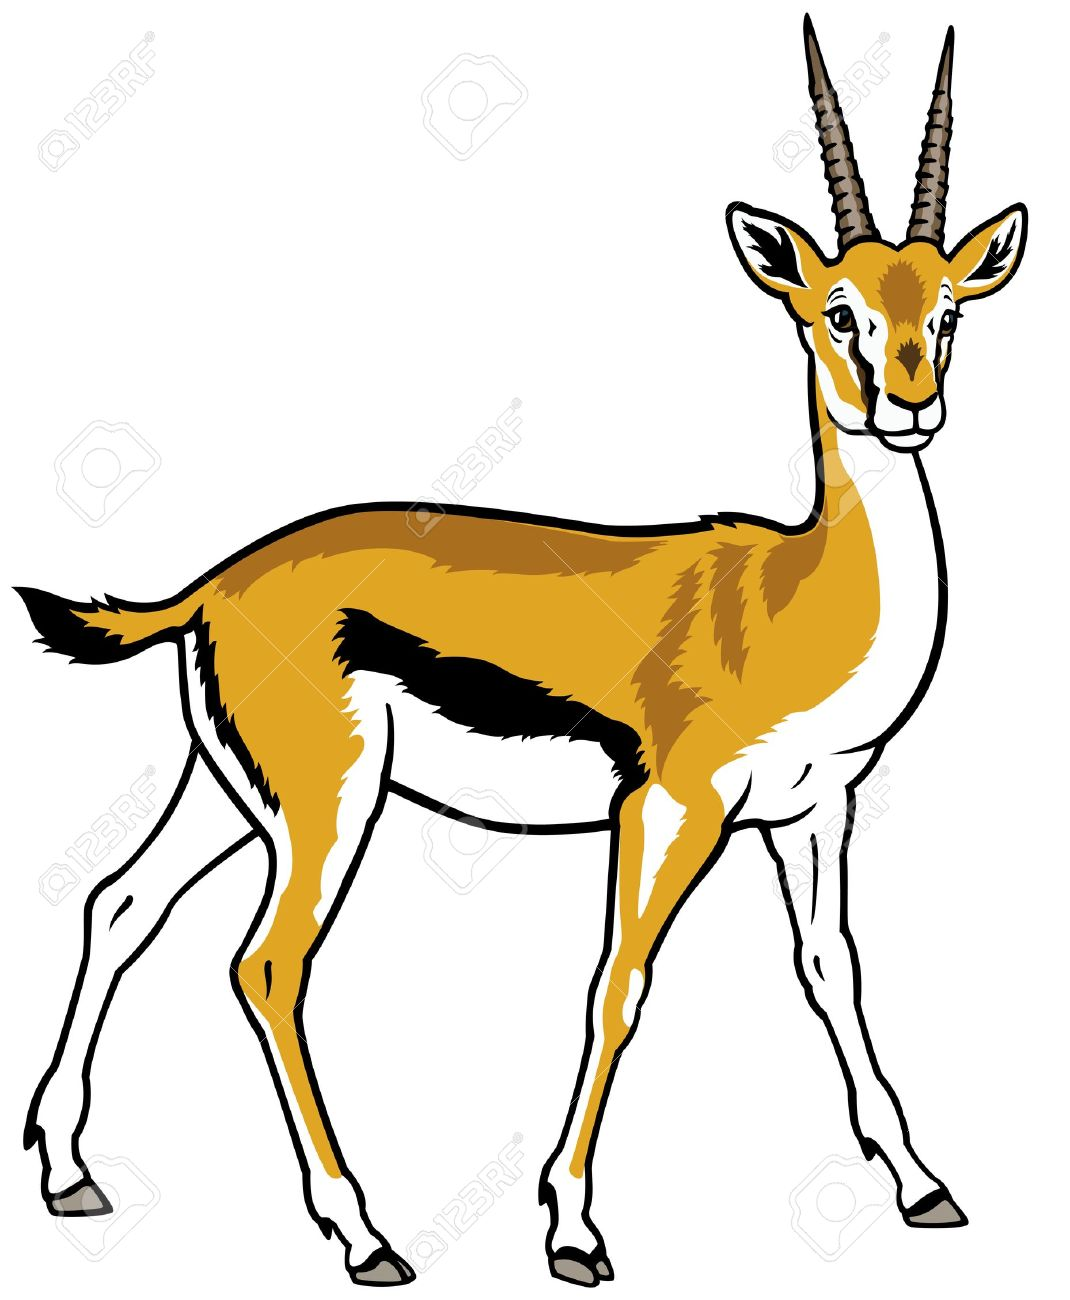 Gazelle clipart #7, Download drawings